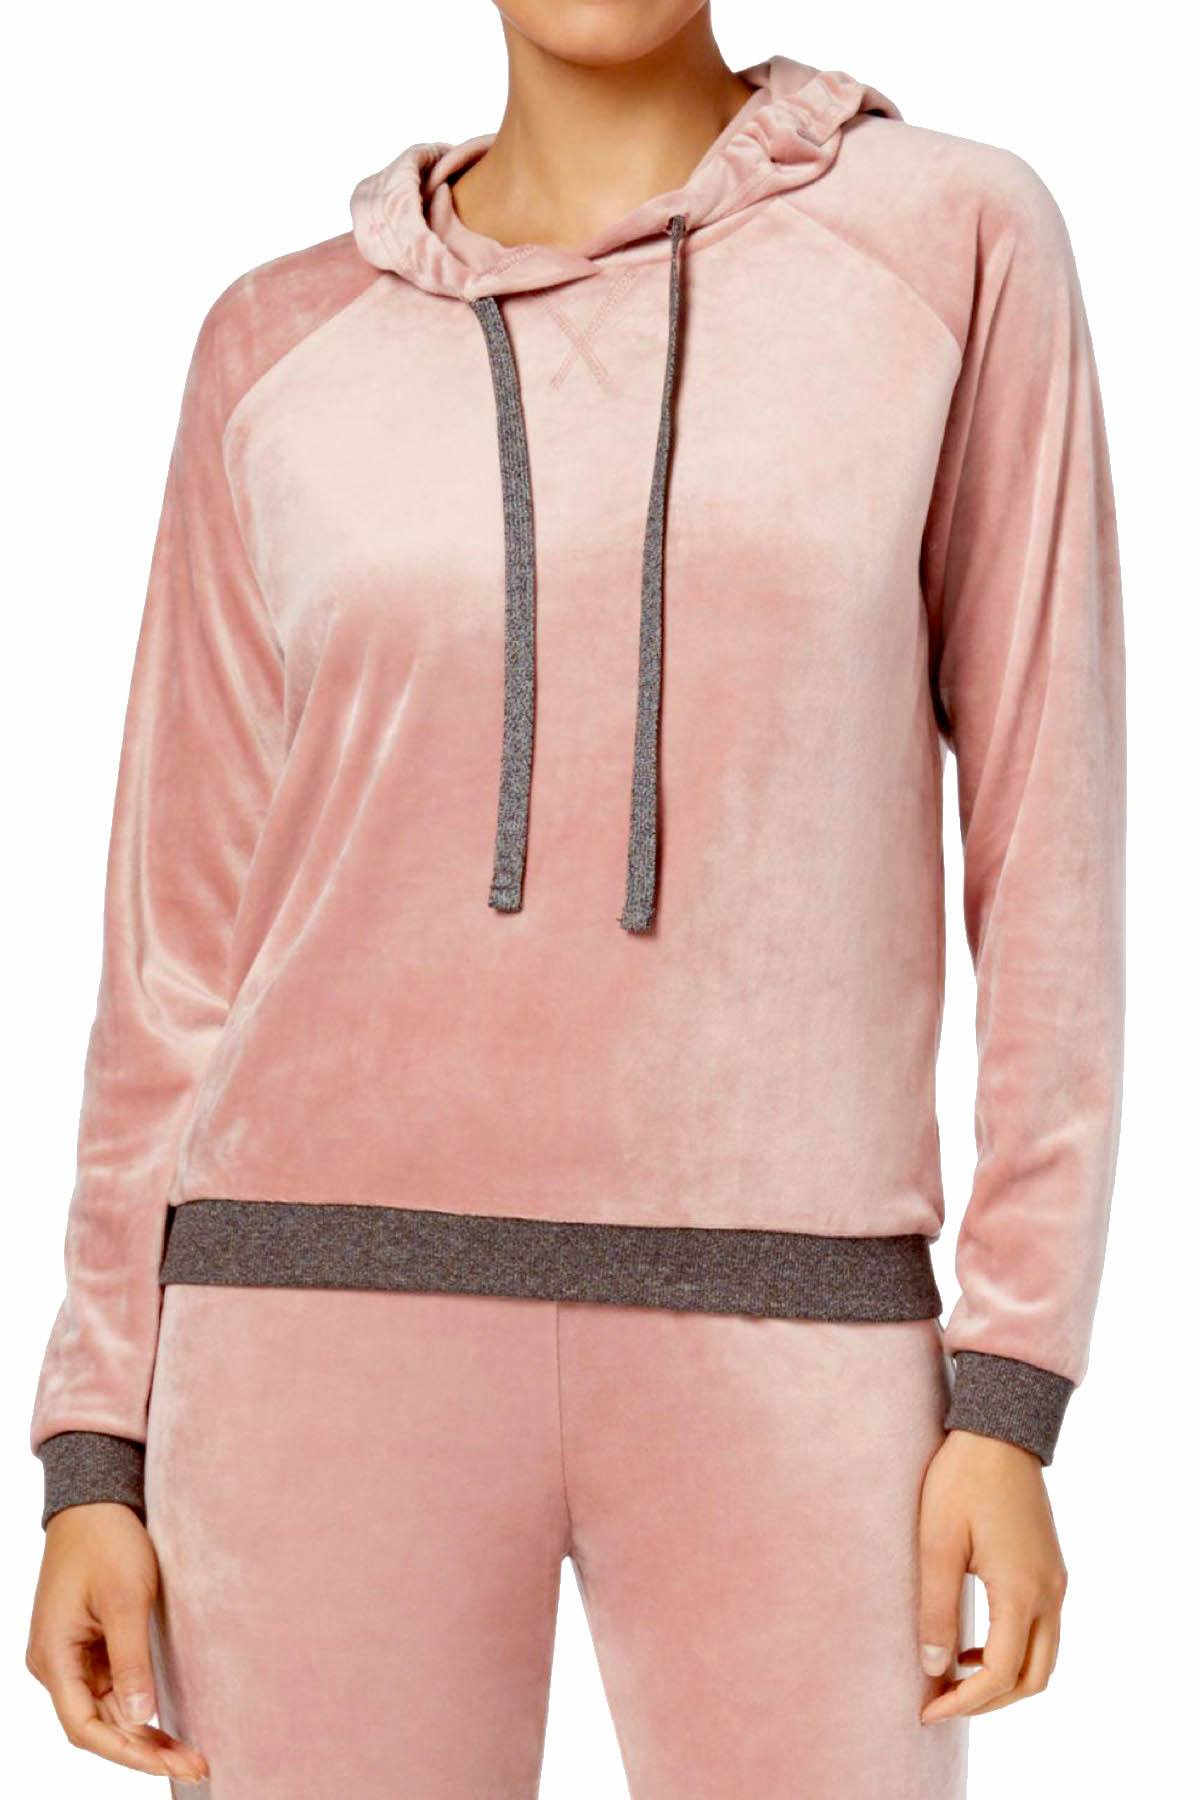 Alfani Intimates Rosy-Blush Velvet Hooded Pajama Top